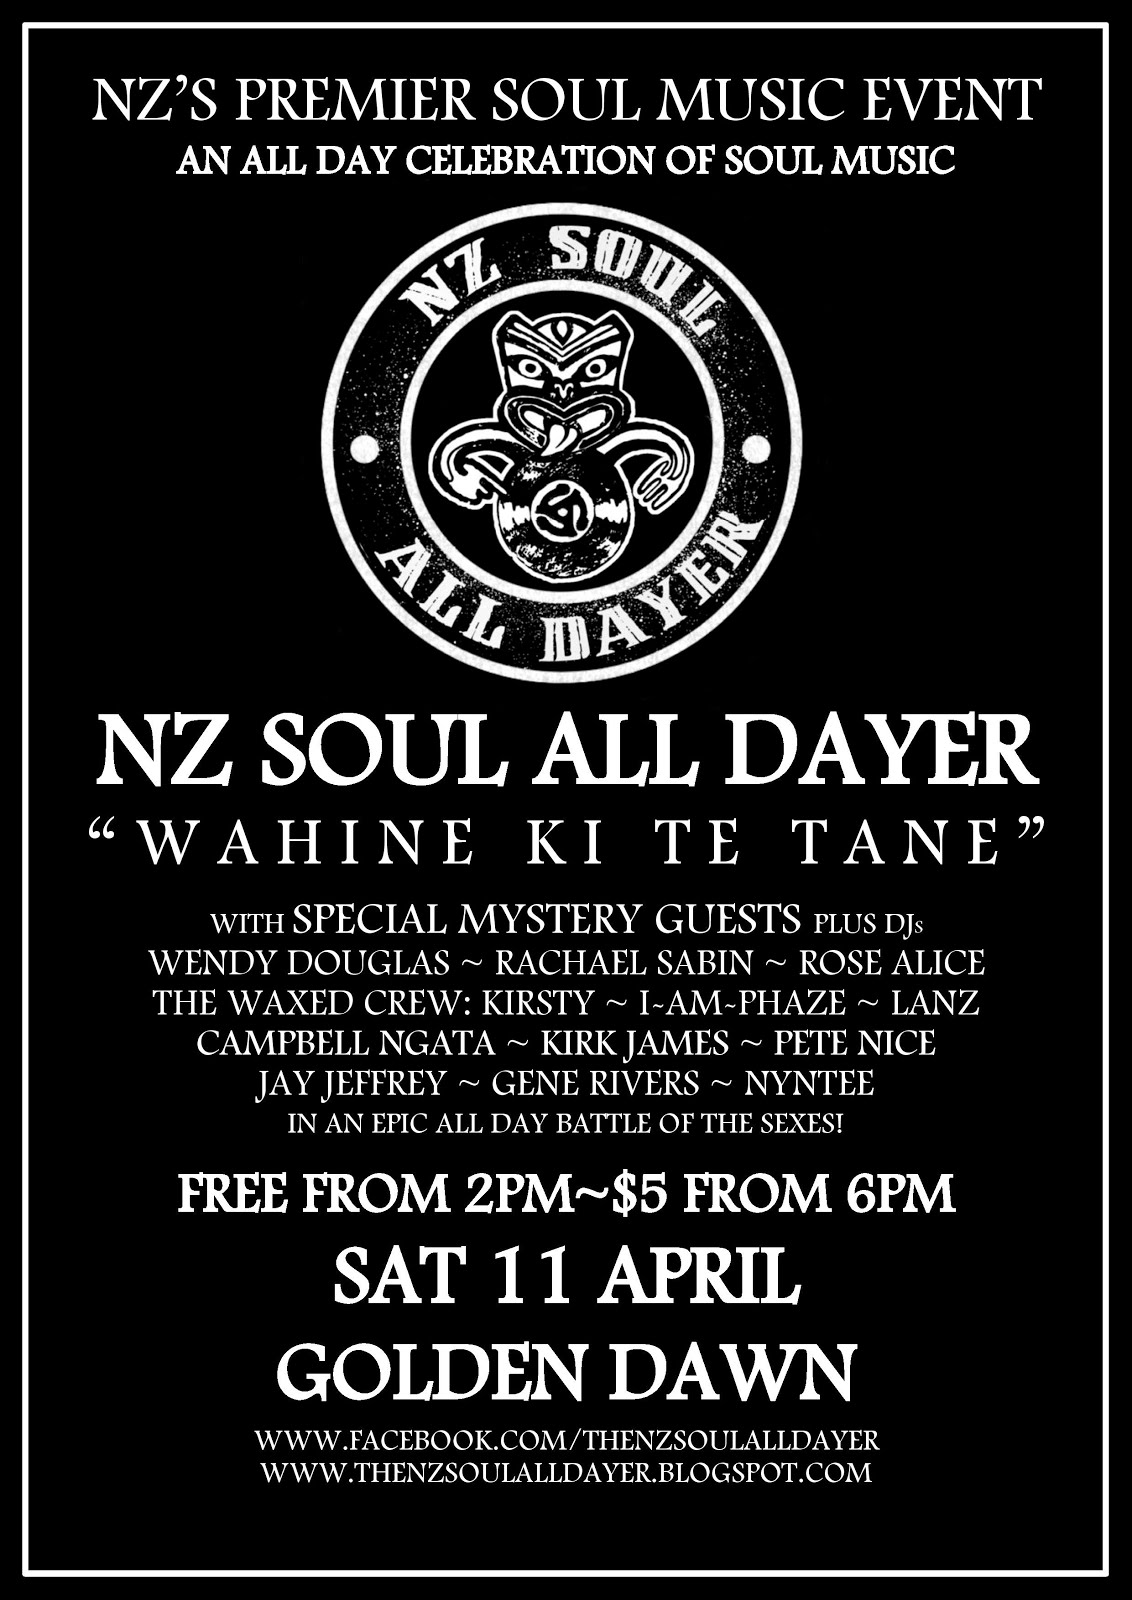 NZ Soul All Dayer #7